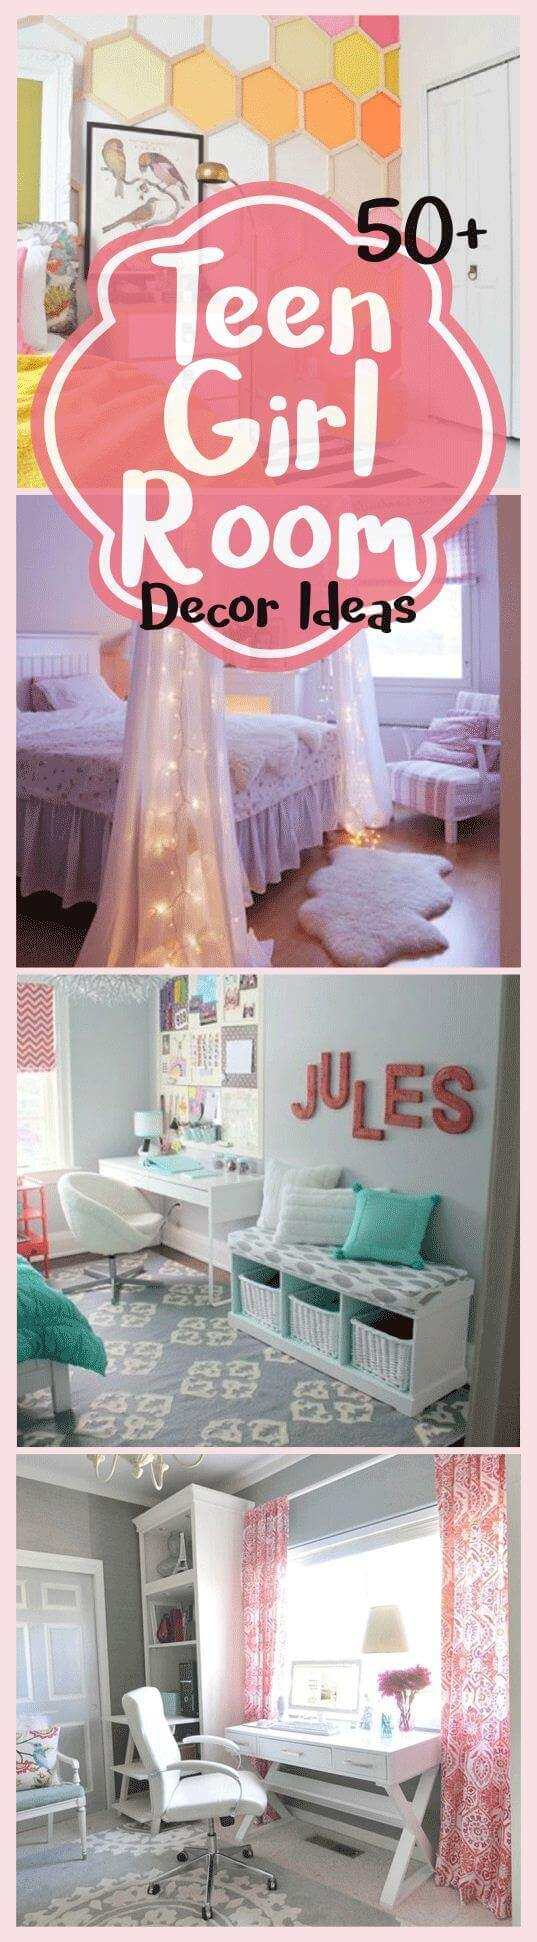 34 Cool And Simple Teen Girl Bedroom Ideas For Small Rooms